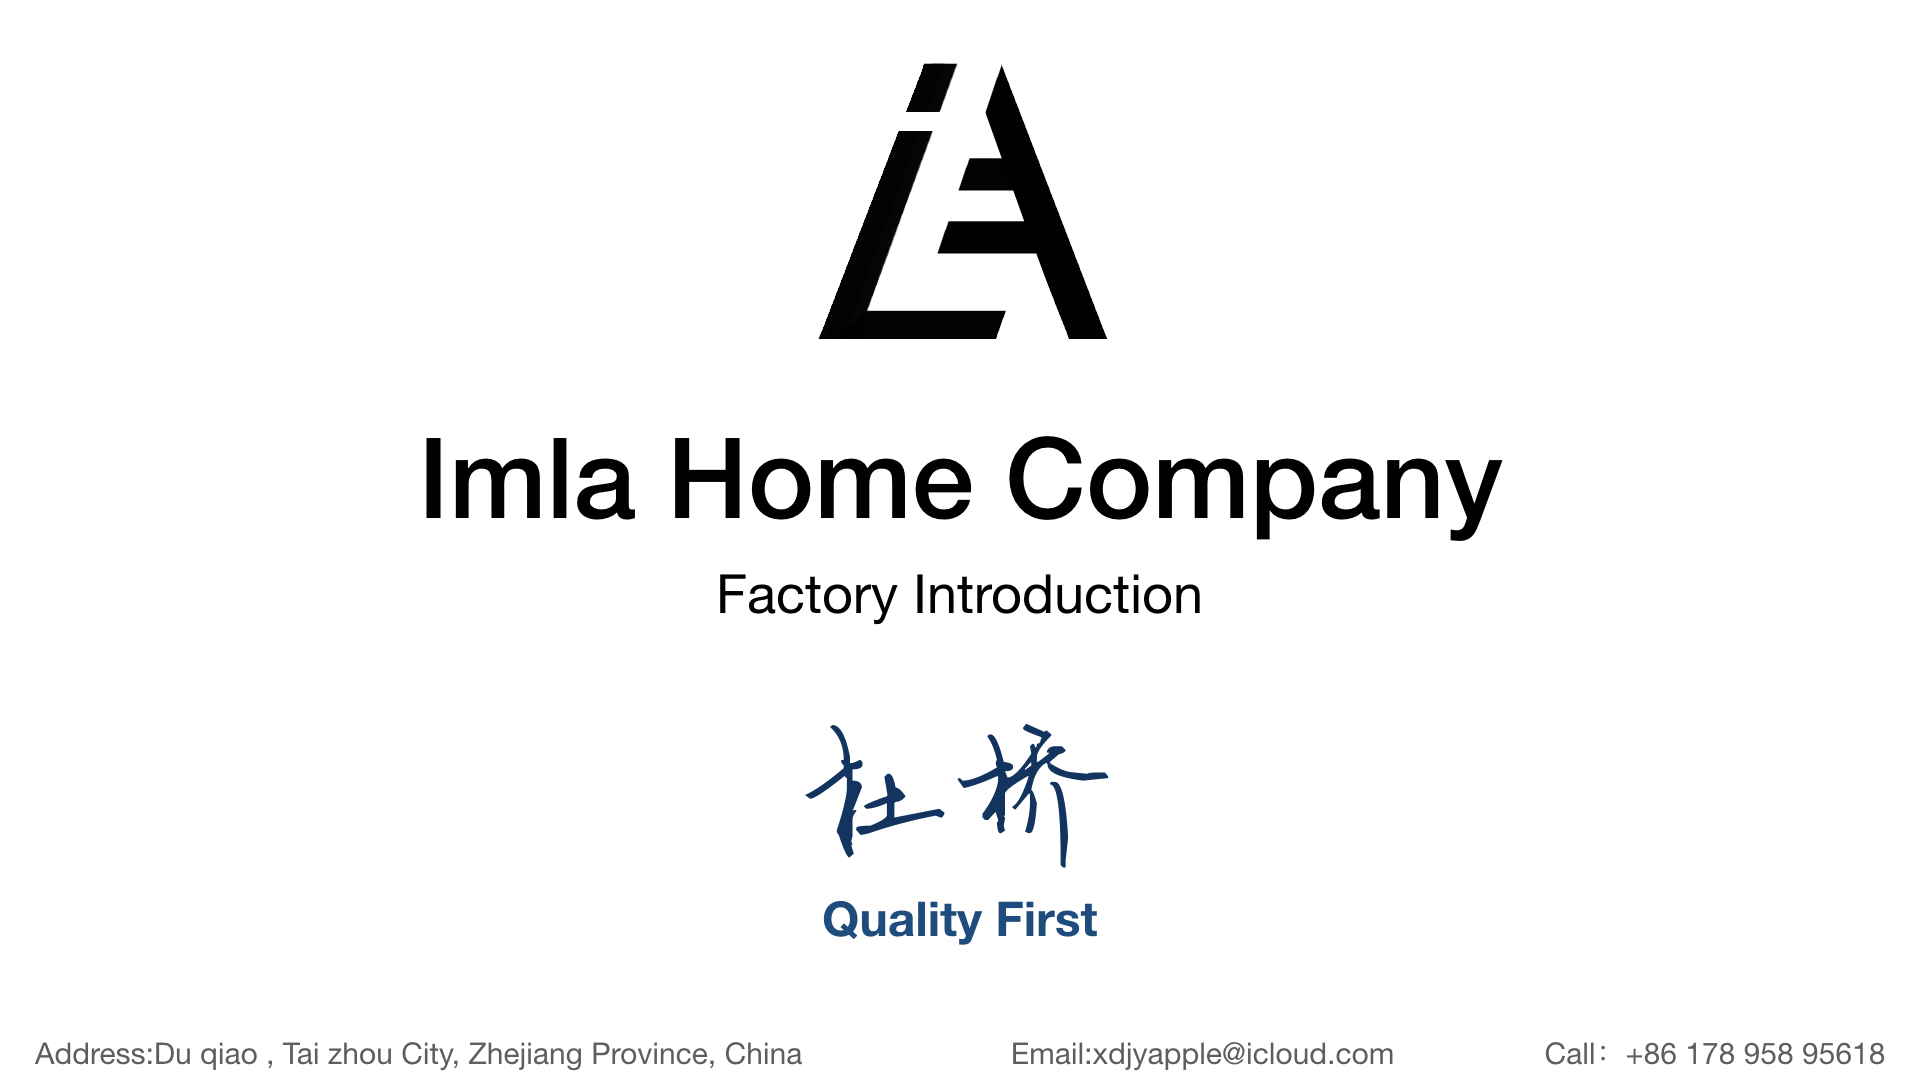 TAIZHOU YINLA HOUSEHOLD ARTICLES CO.,LTD